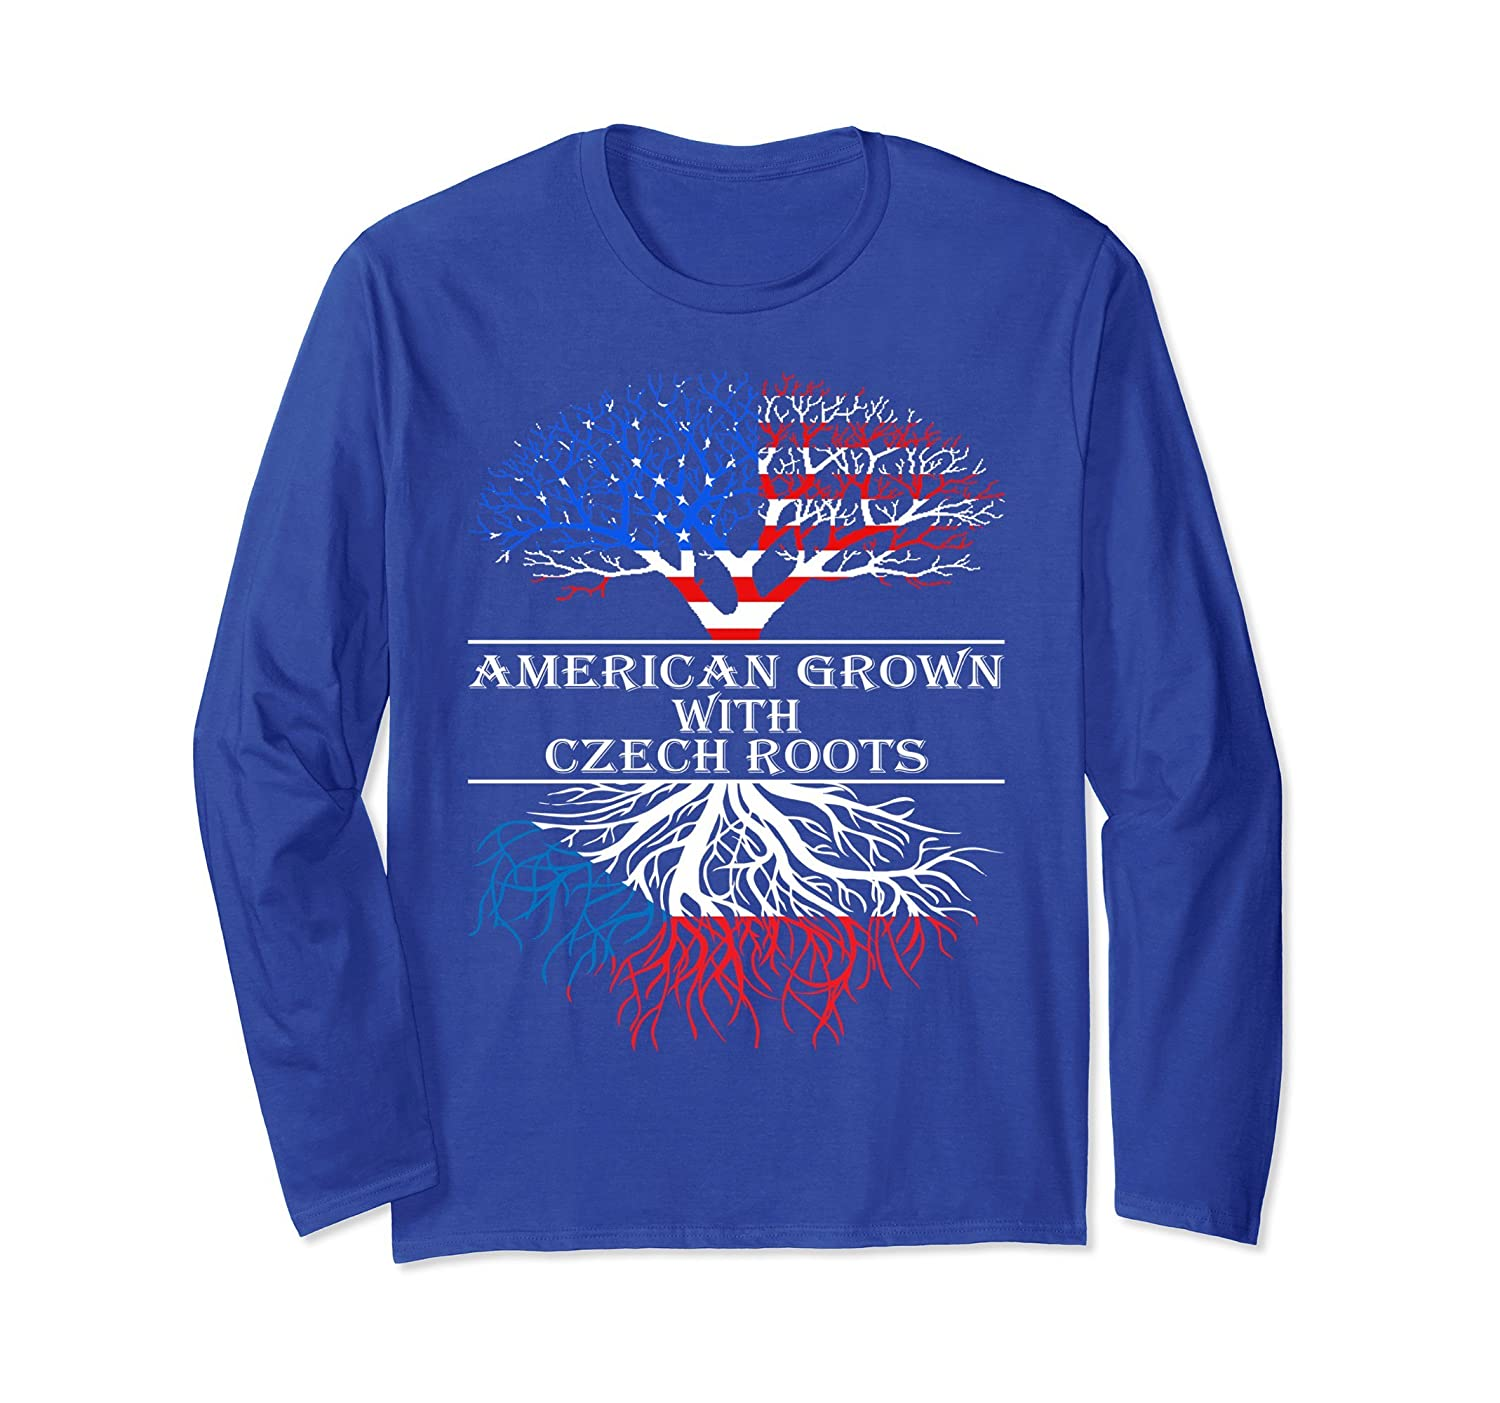 American Grown With Czech Roots Country Tshirt-ah my shirt one gift